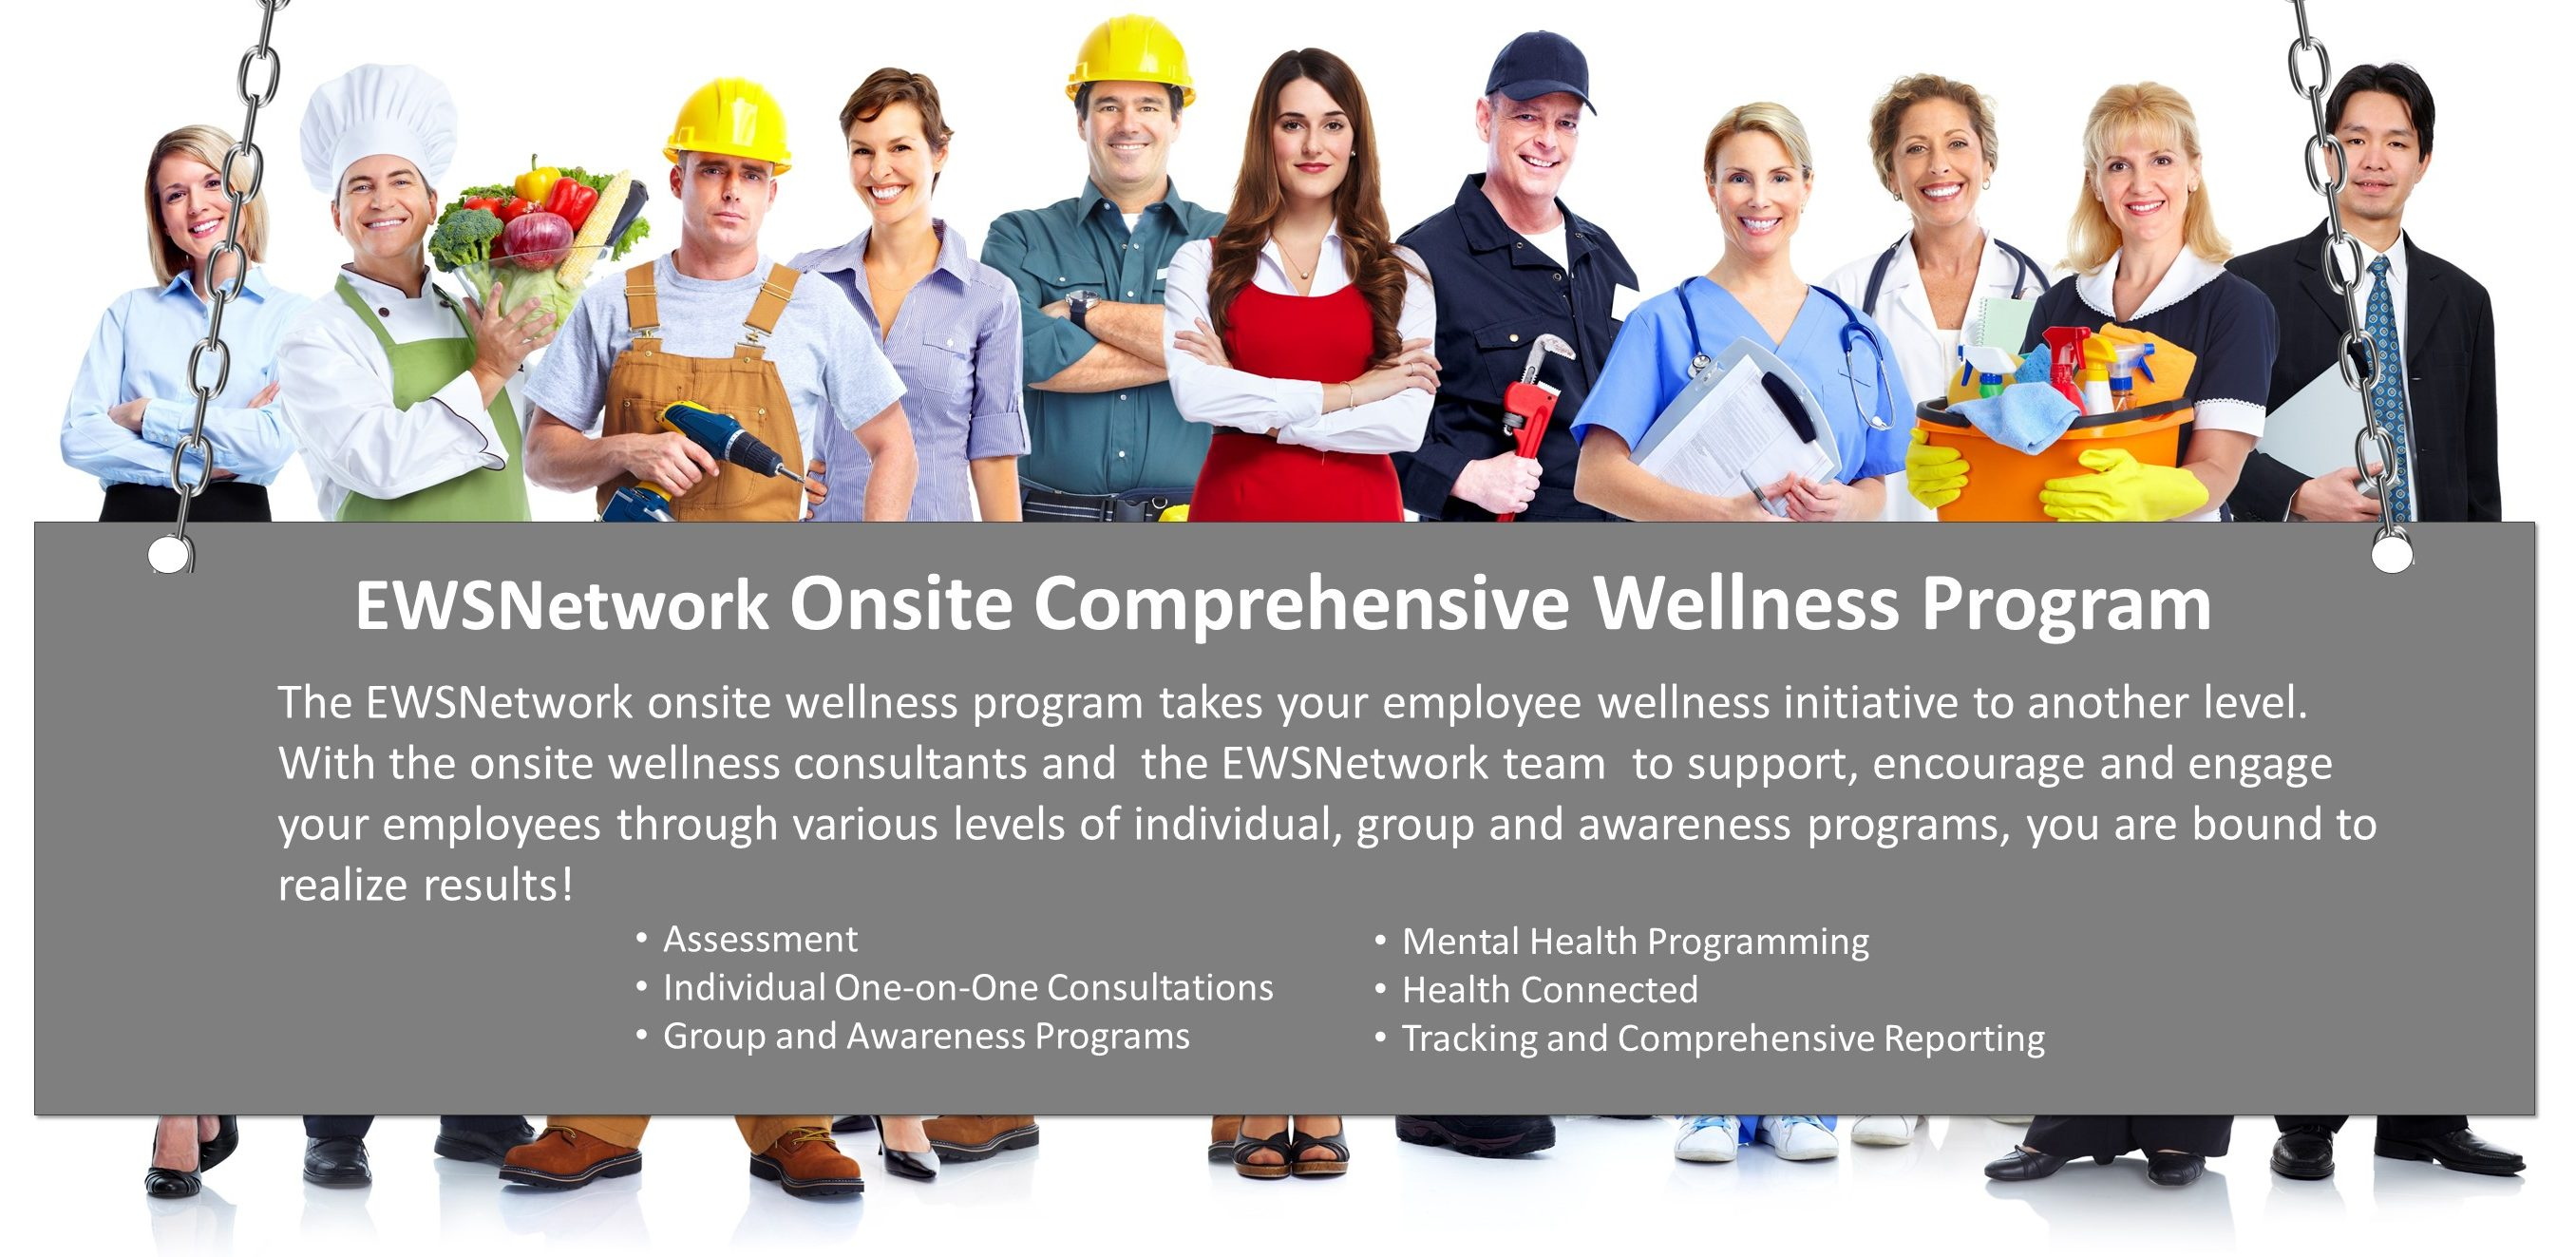 EWS Network - Employee Wellness